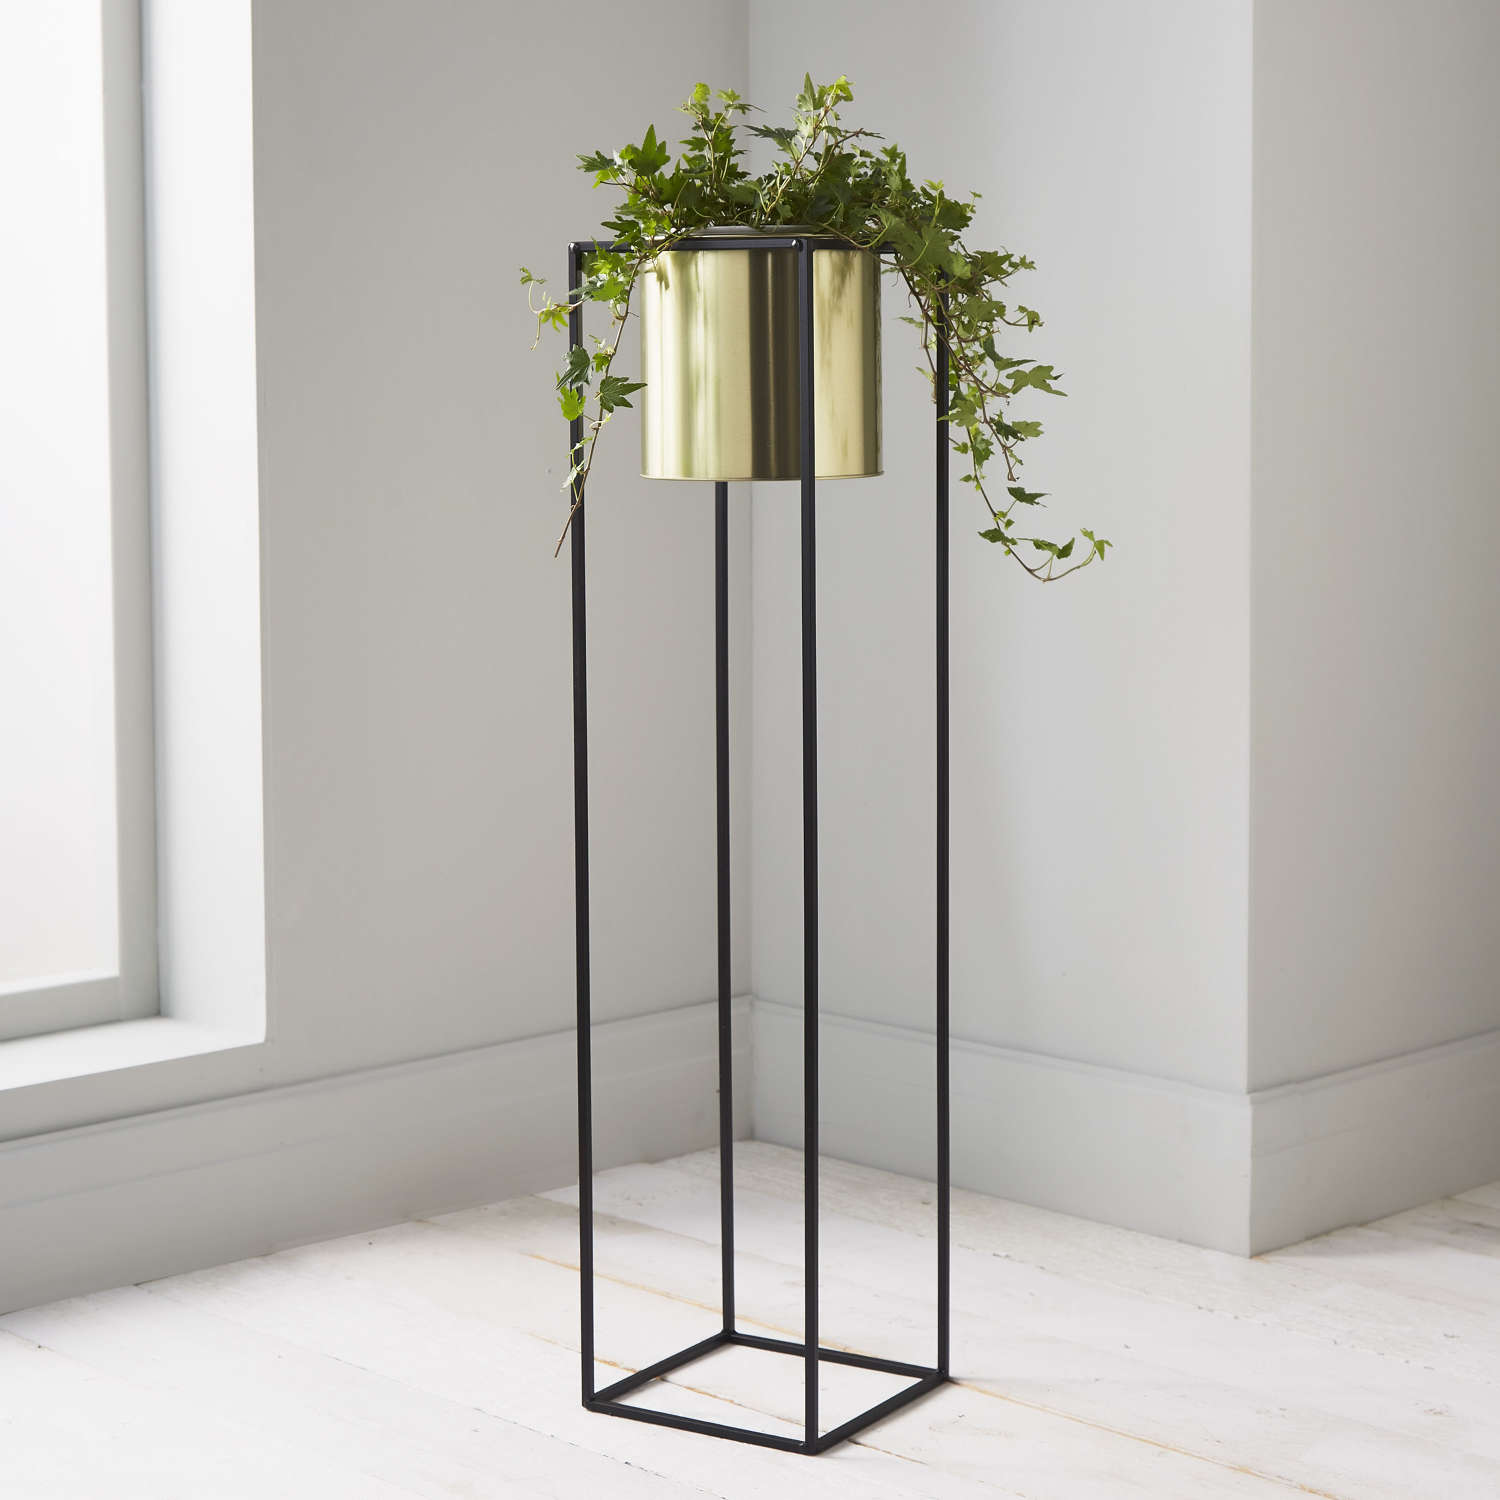 Round gold plant holder in square black metal stand